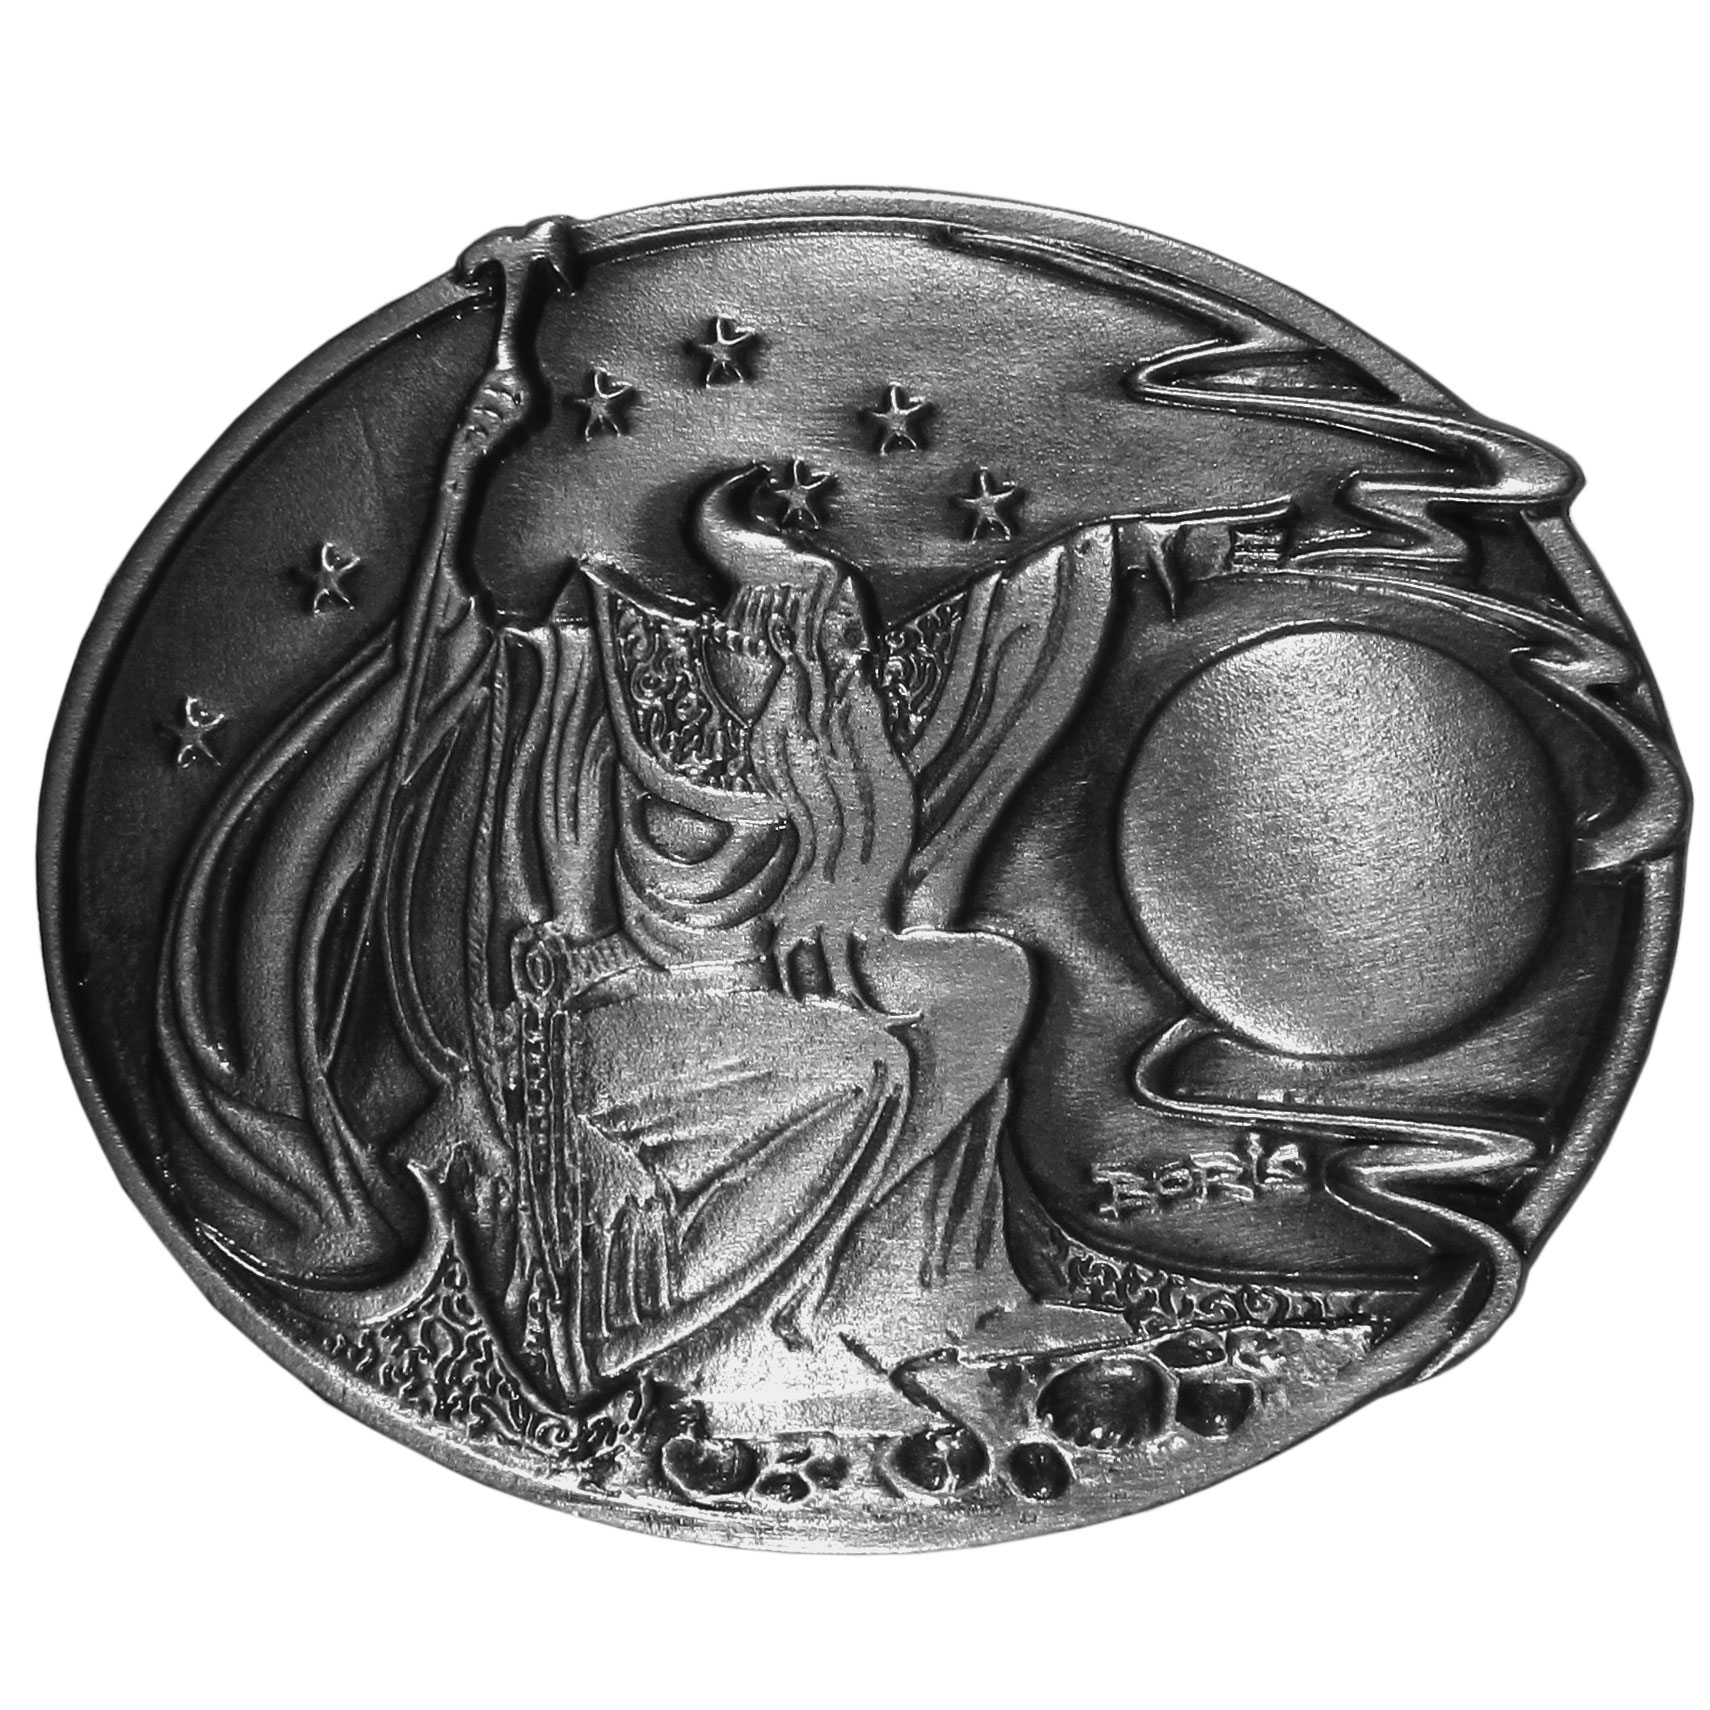 "Vallejo Wizard Antiqued Belt Buckle - ""This collector's item is a Boris Vallejo wizard belt buckle.  There is a wizard, stars and a full moon, as well as Boris' signature.  On the back are the words, """"Wizard, 1992, Boris Vallejo"""".  Finely sculpted and intricately designed belt buckle. Our unique designs often become collector's items."""